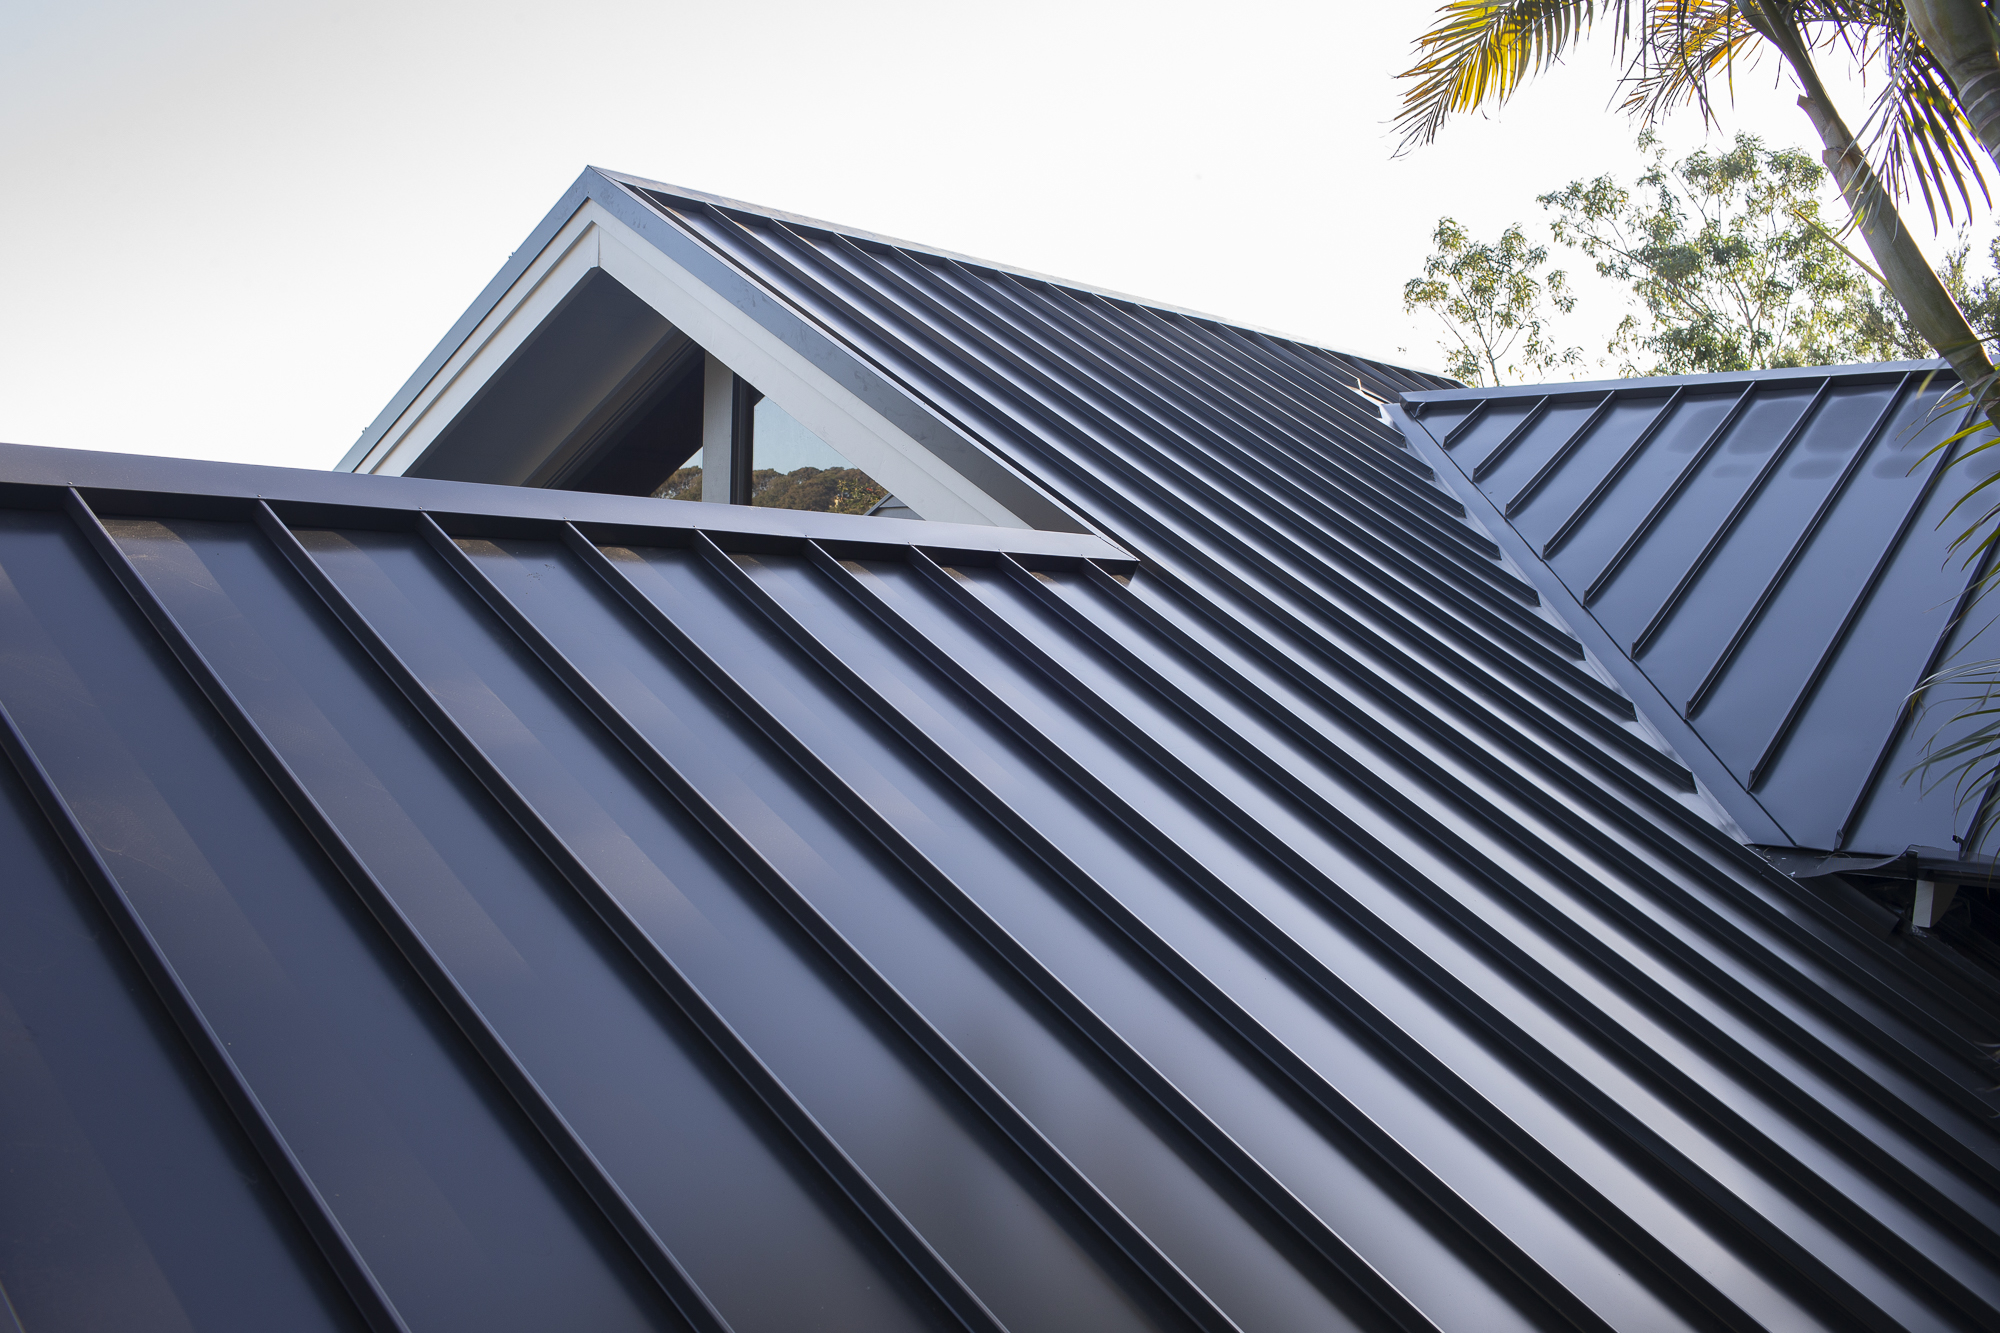 Snap-Line 45 Roofing - Architectural Panels & Cladding